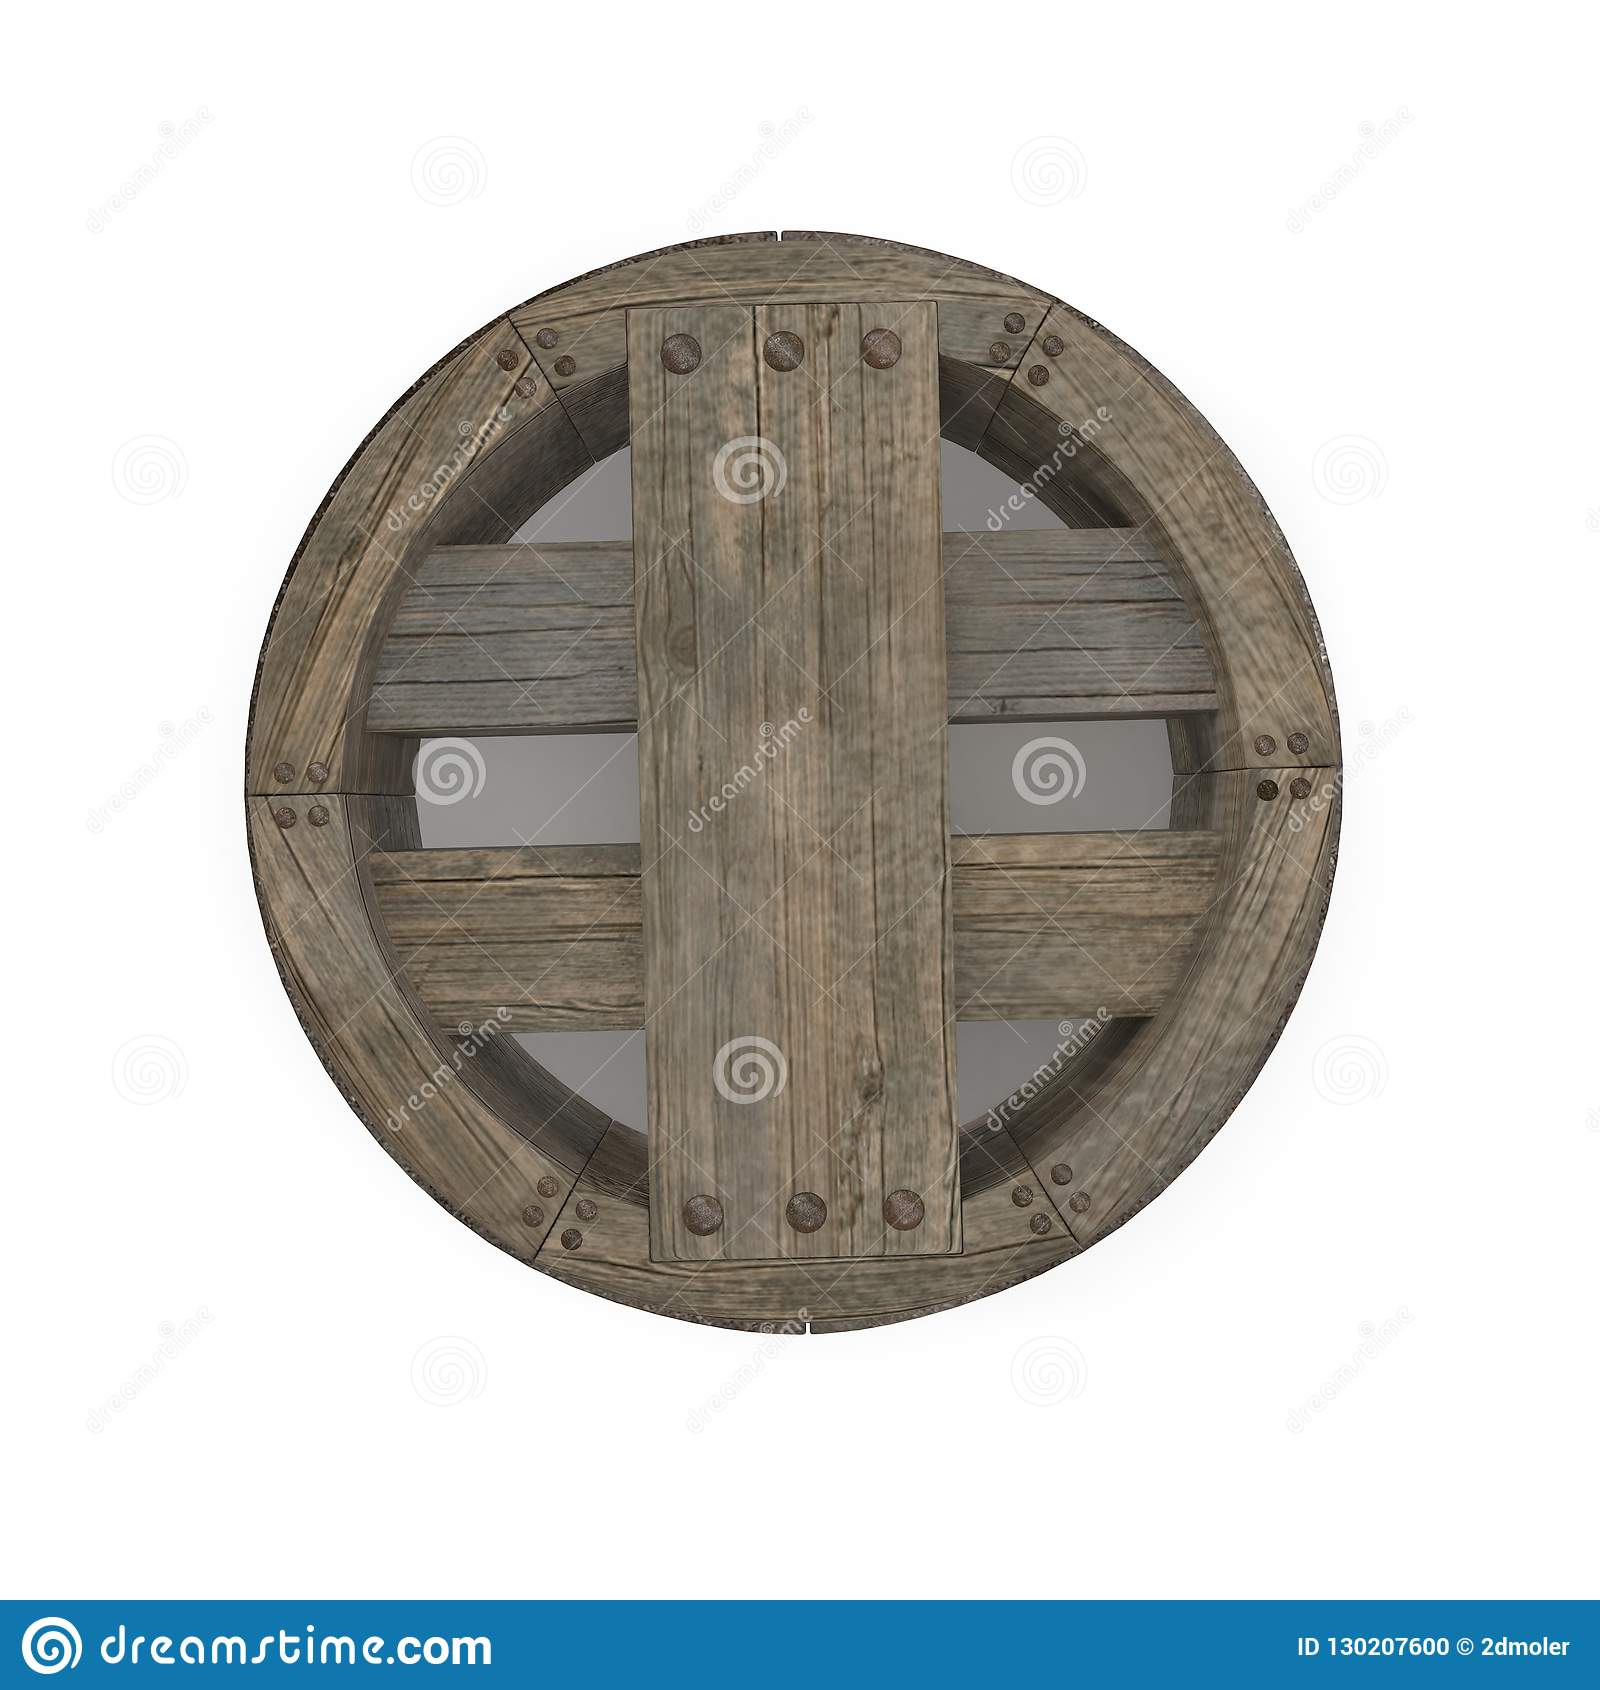 Antique Wooden Wheel On White Background. 3D Illustration, isolated